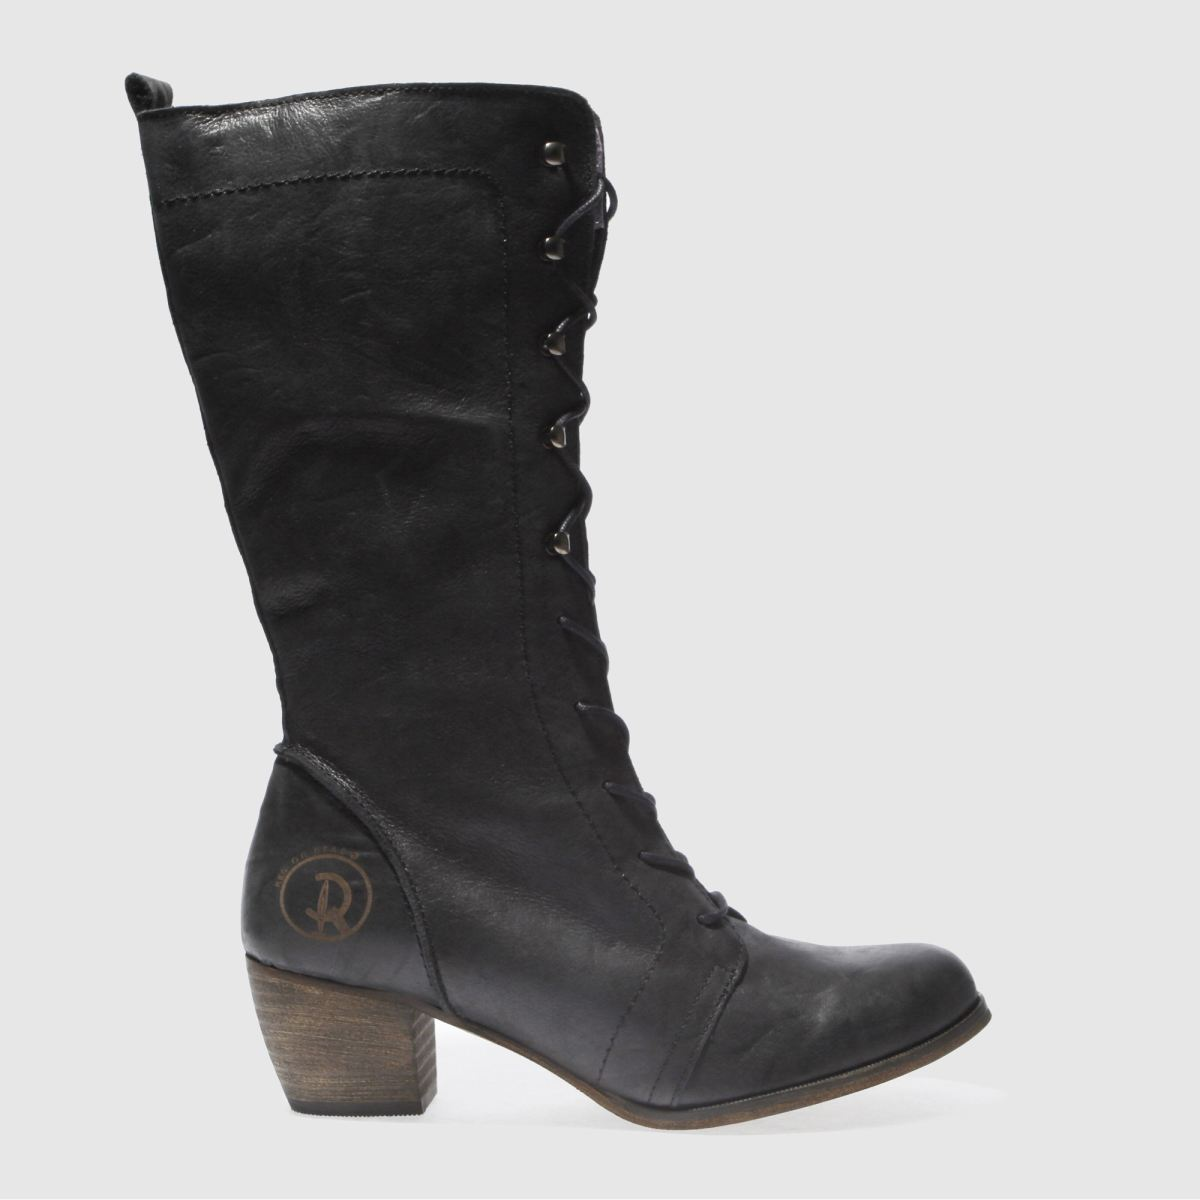 Red Or Dead Black Maths Boots